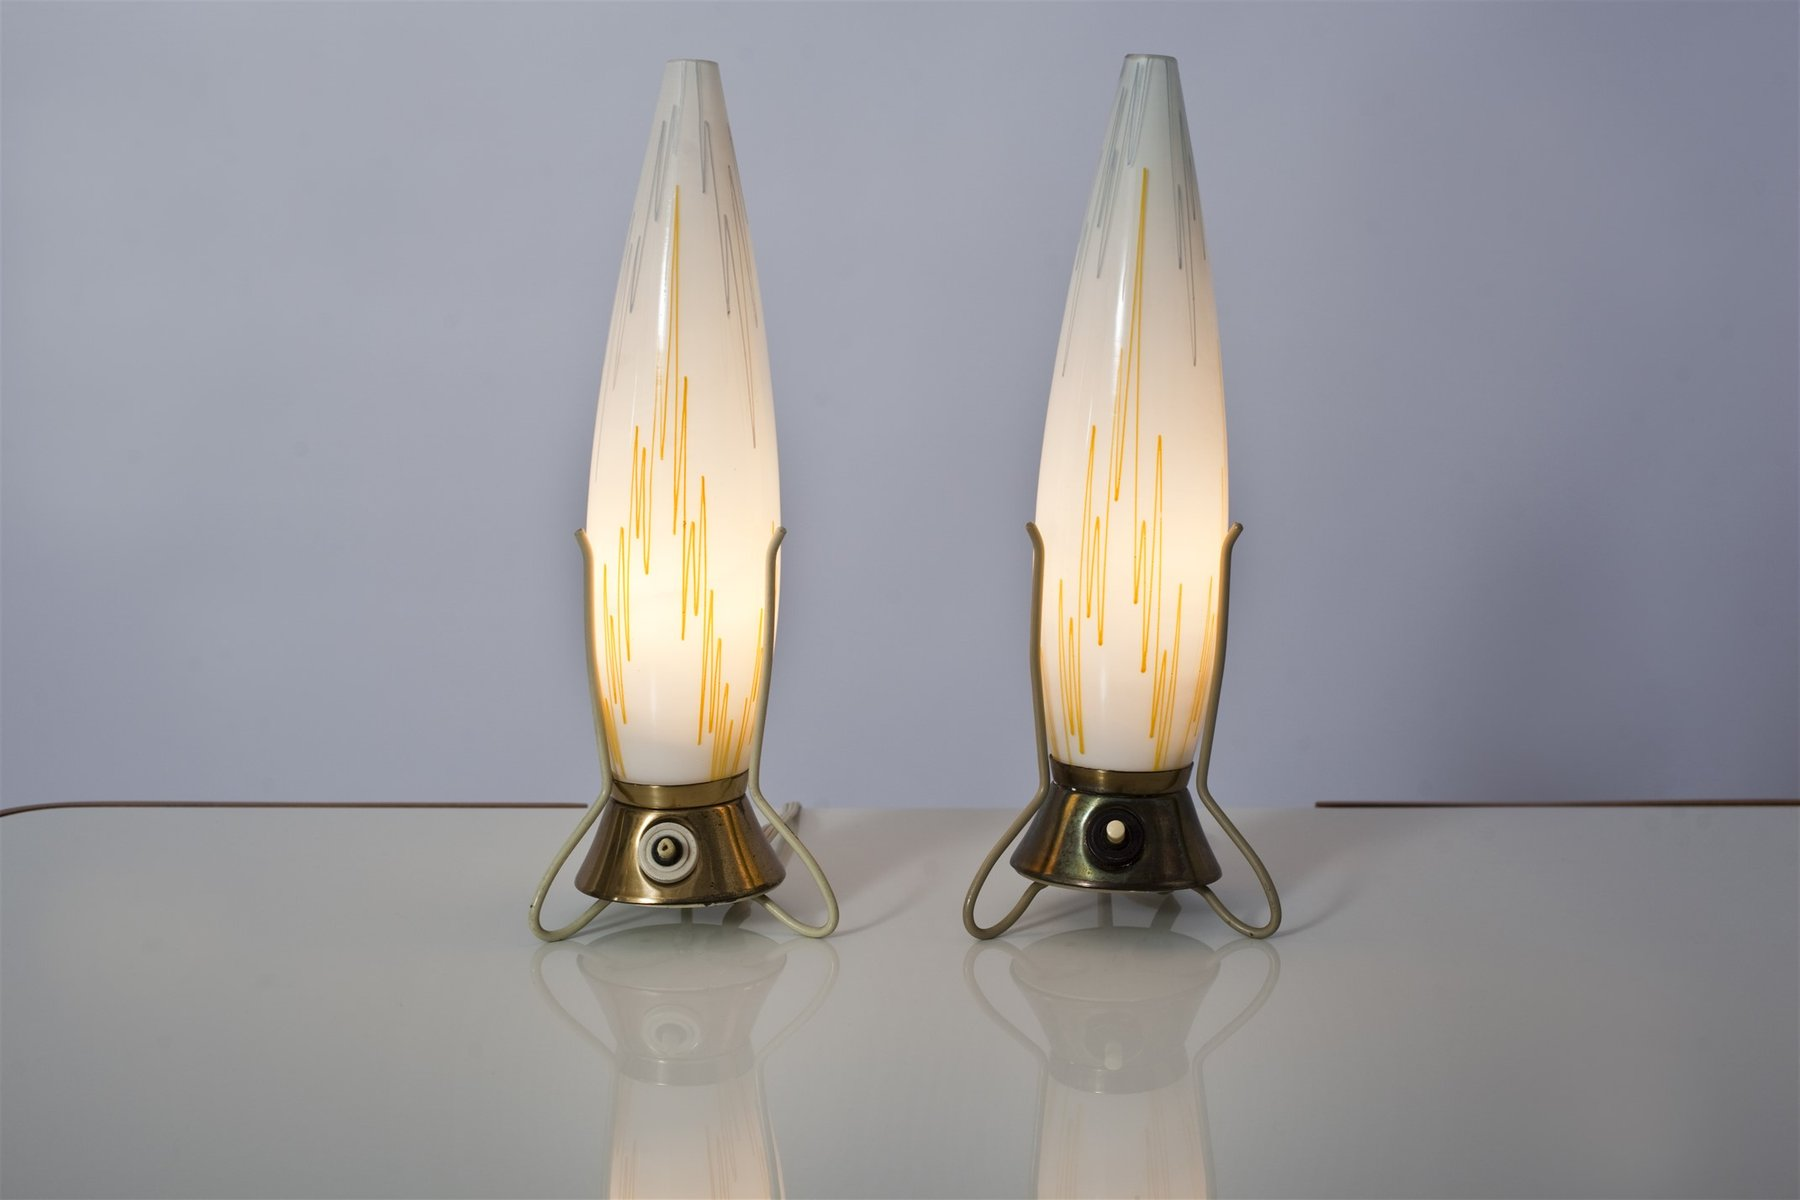 Vintage Czech Tripod Table Lamps Set Of 2 For Sale At Pamono